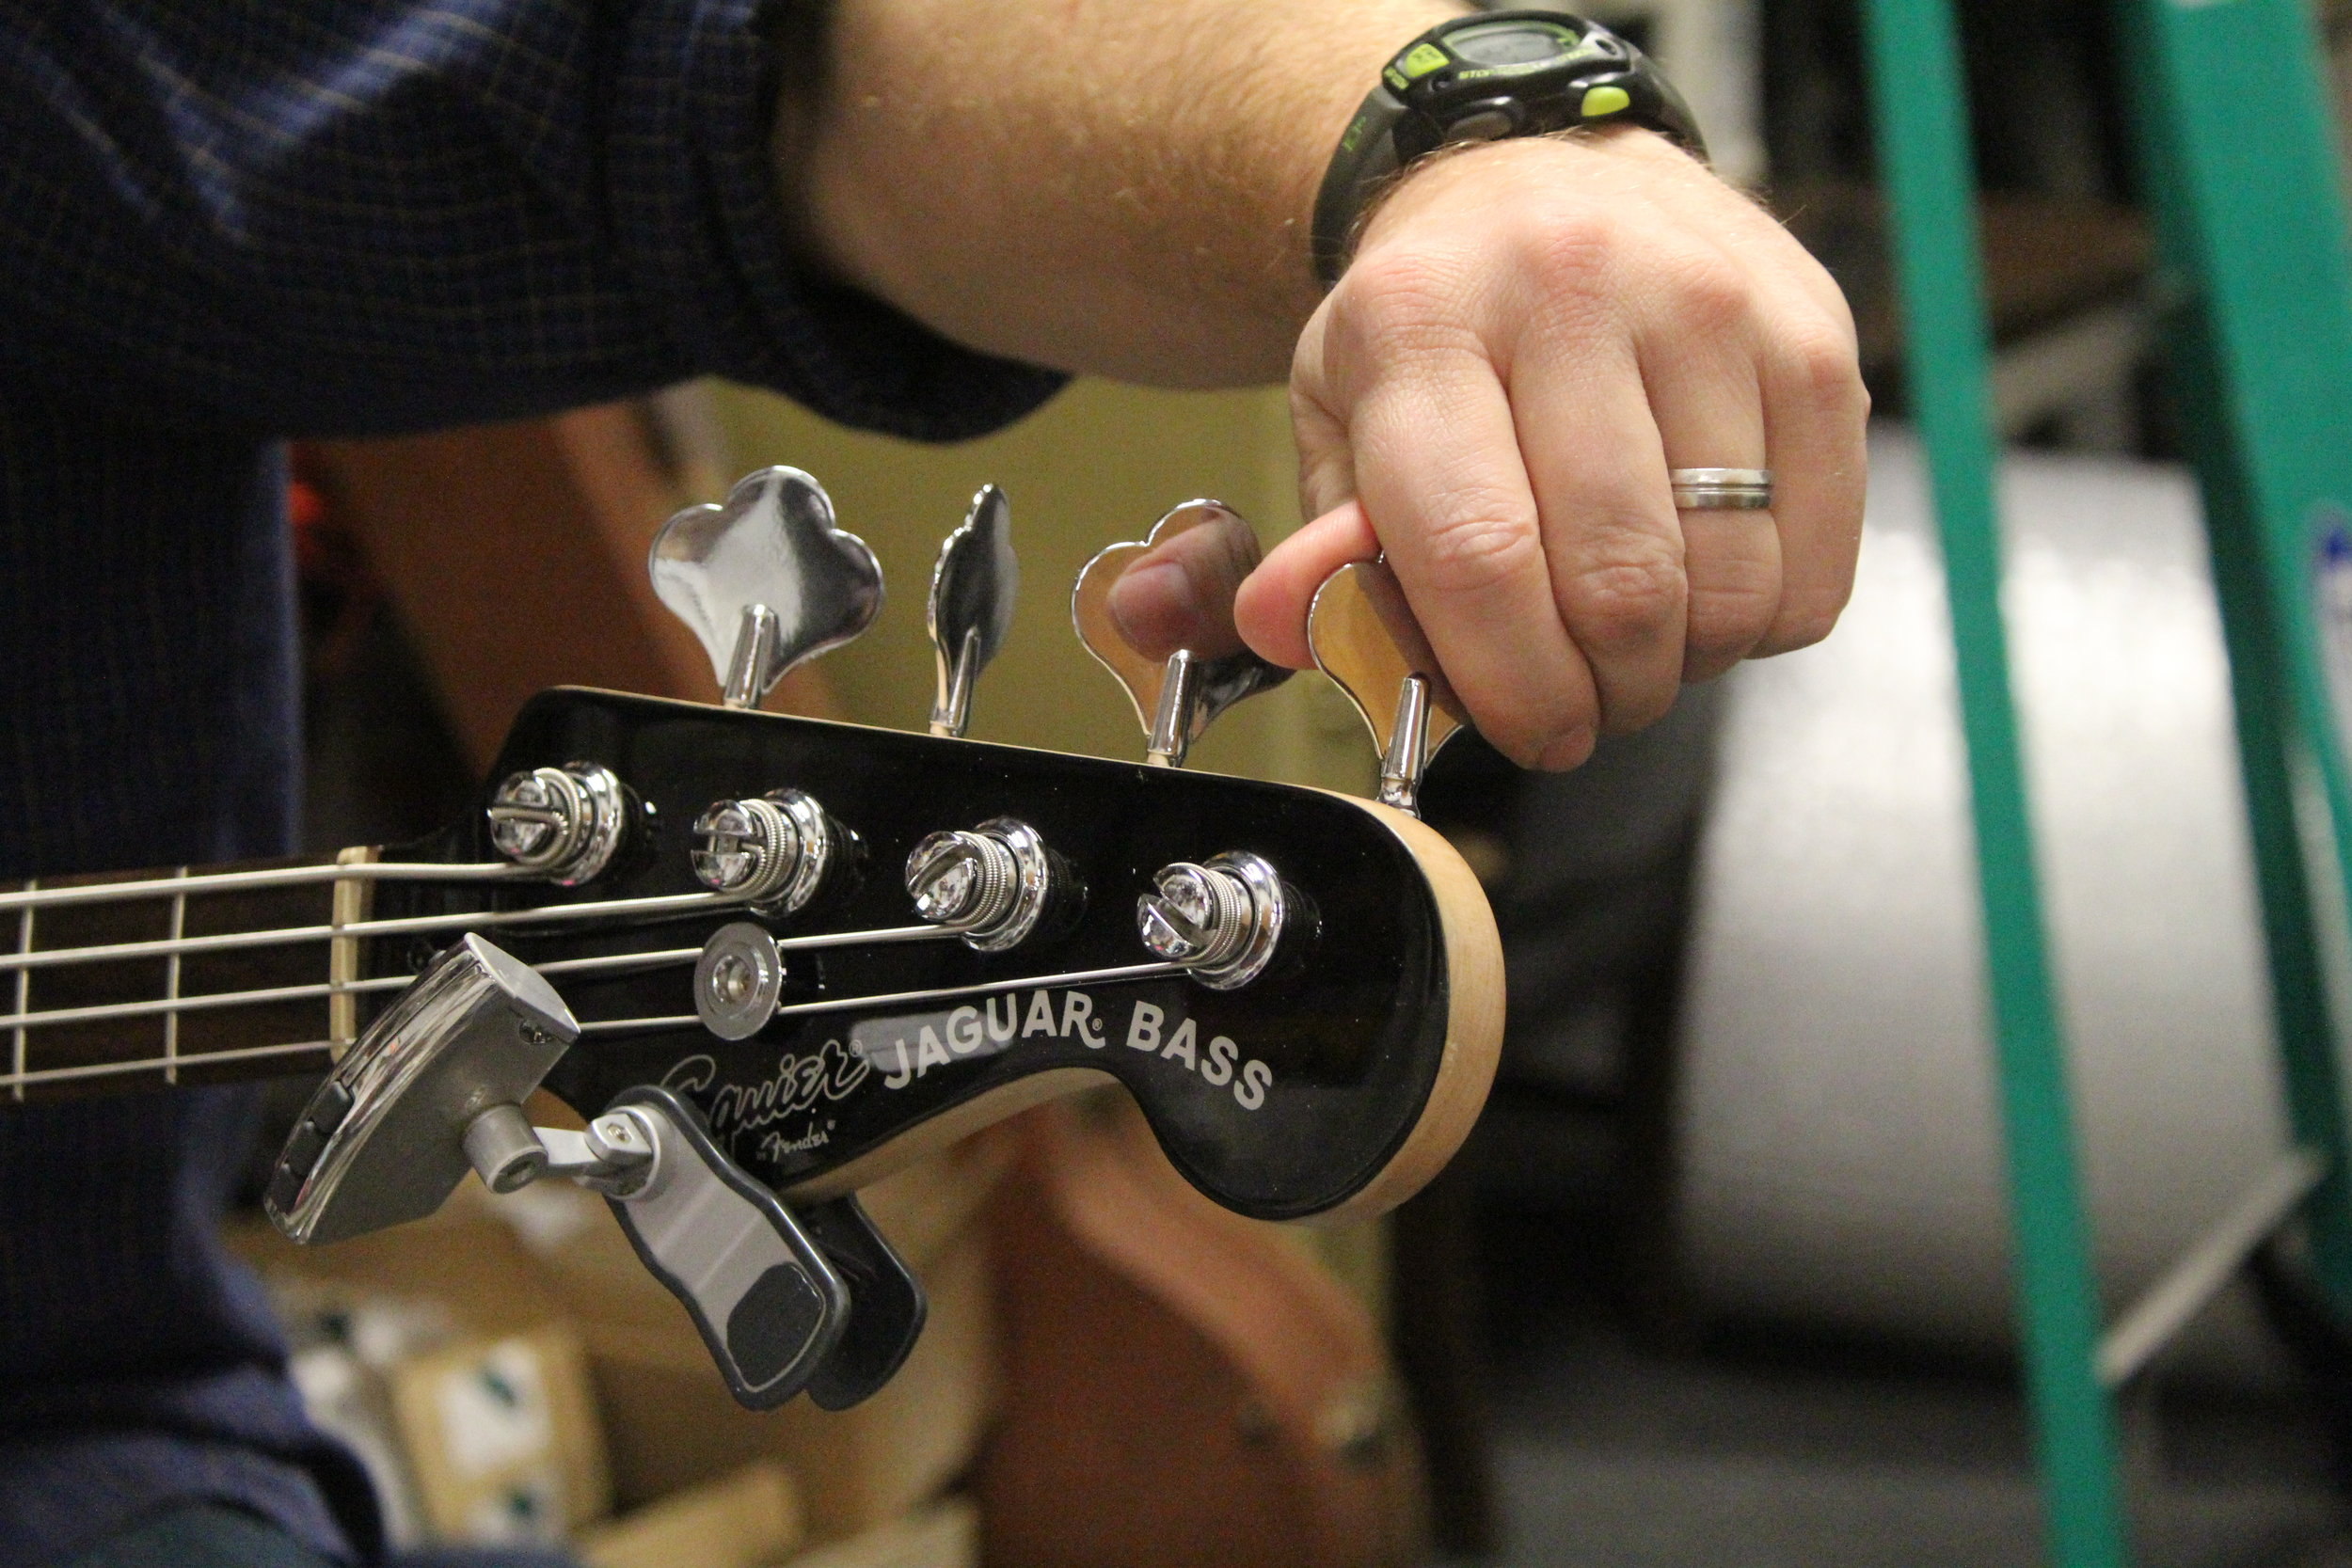 Brent Moore tunes a bass on Friday, Jan. 19, 2018 at CoMo Guitar Works in Columbia, Mo. Moore says this bass is a birthday present for his daughter.